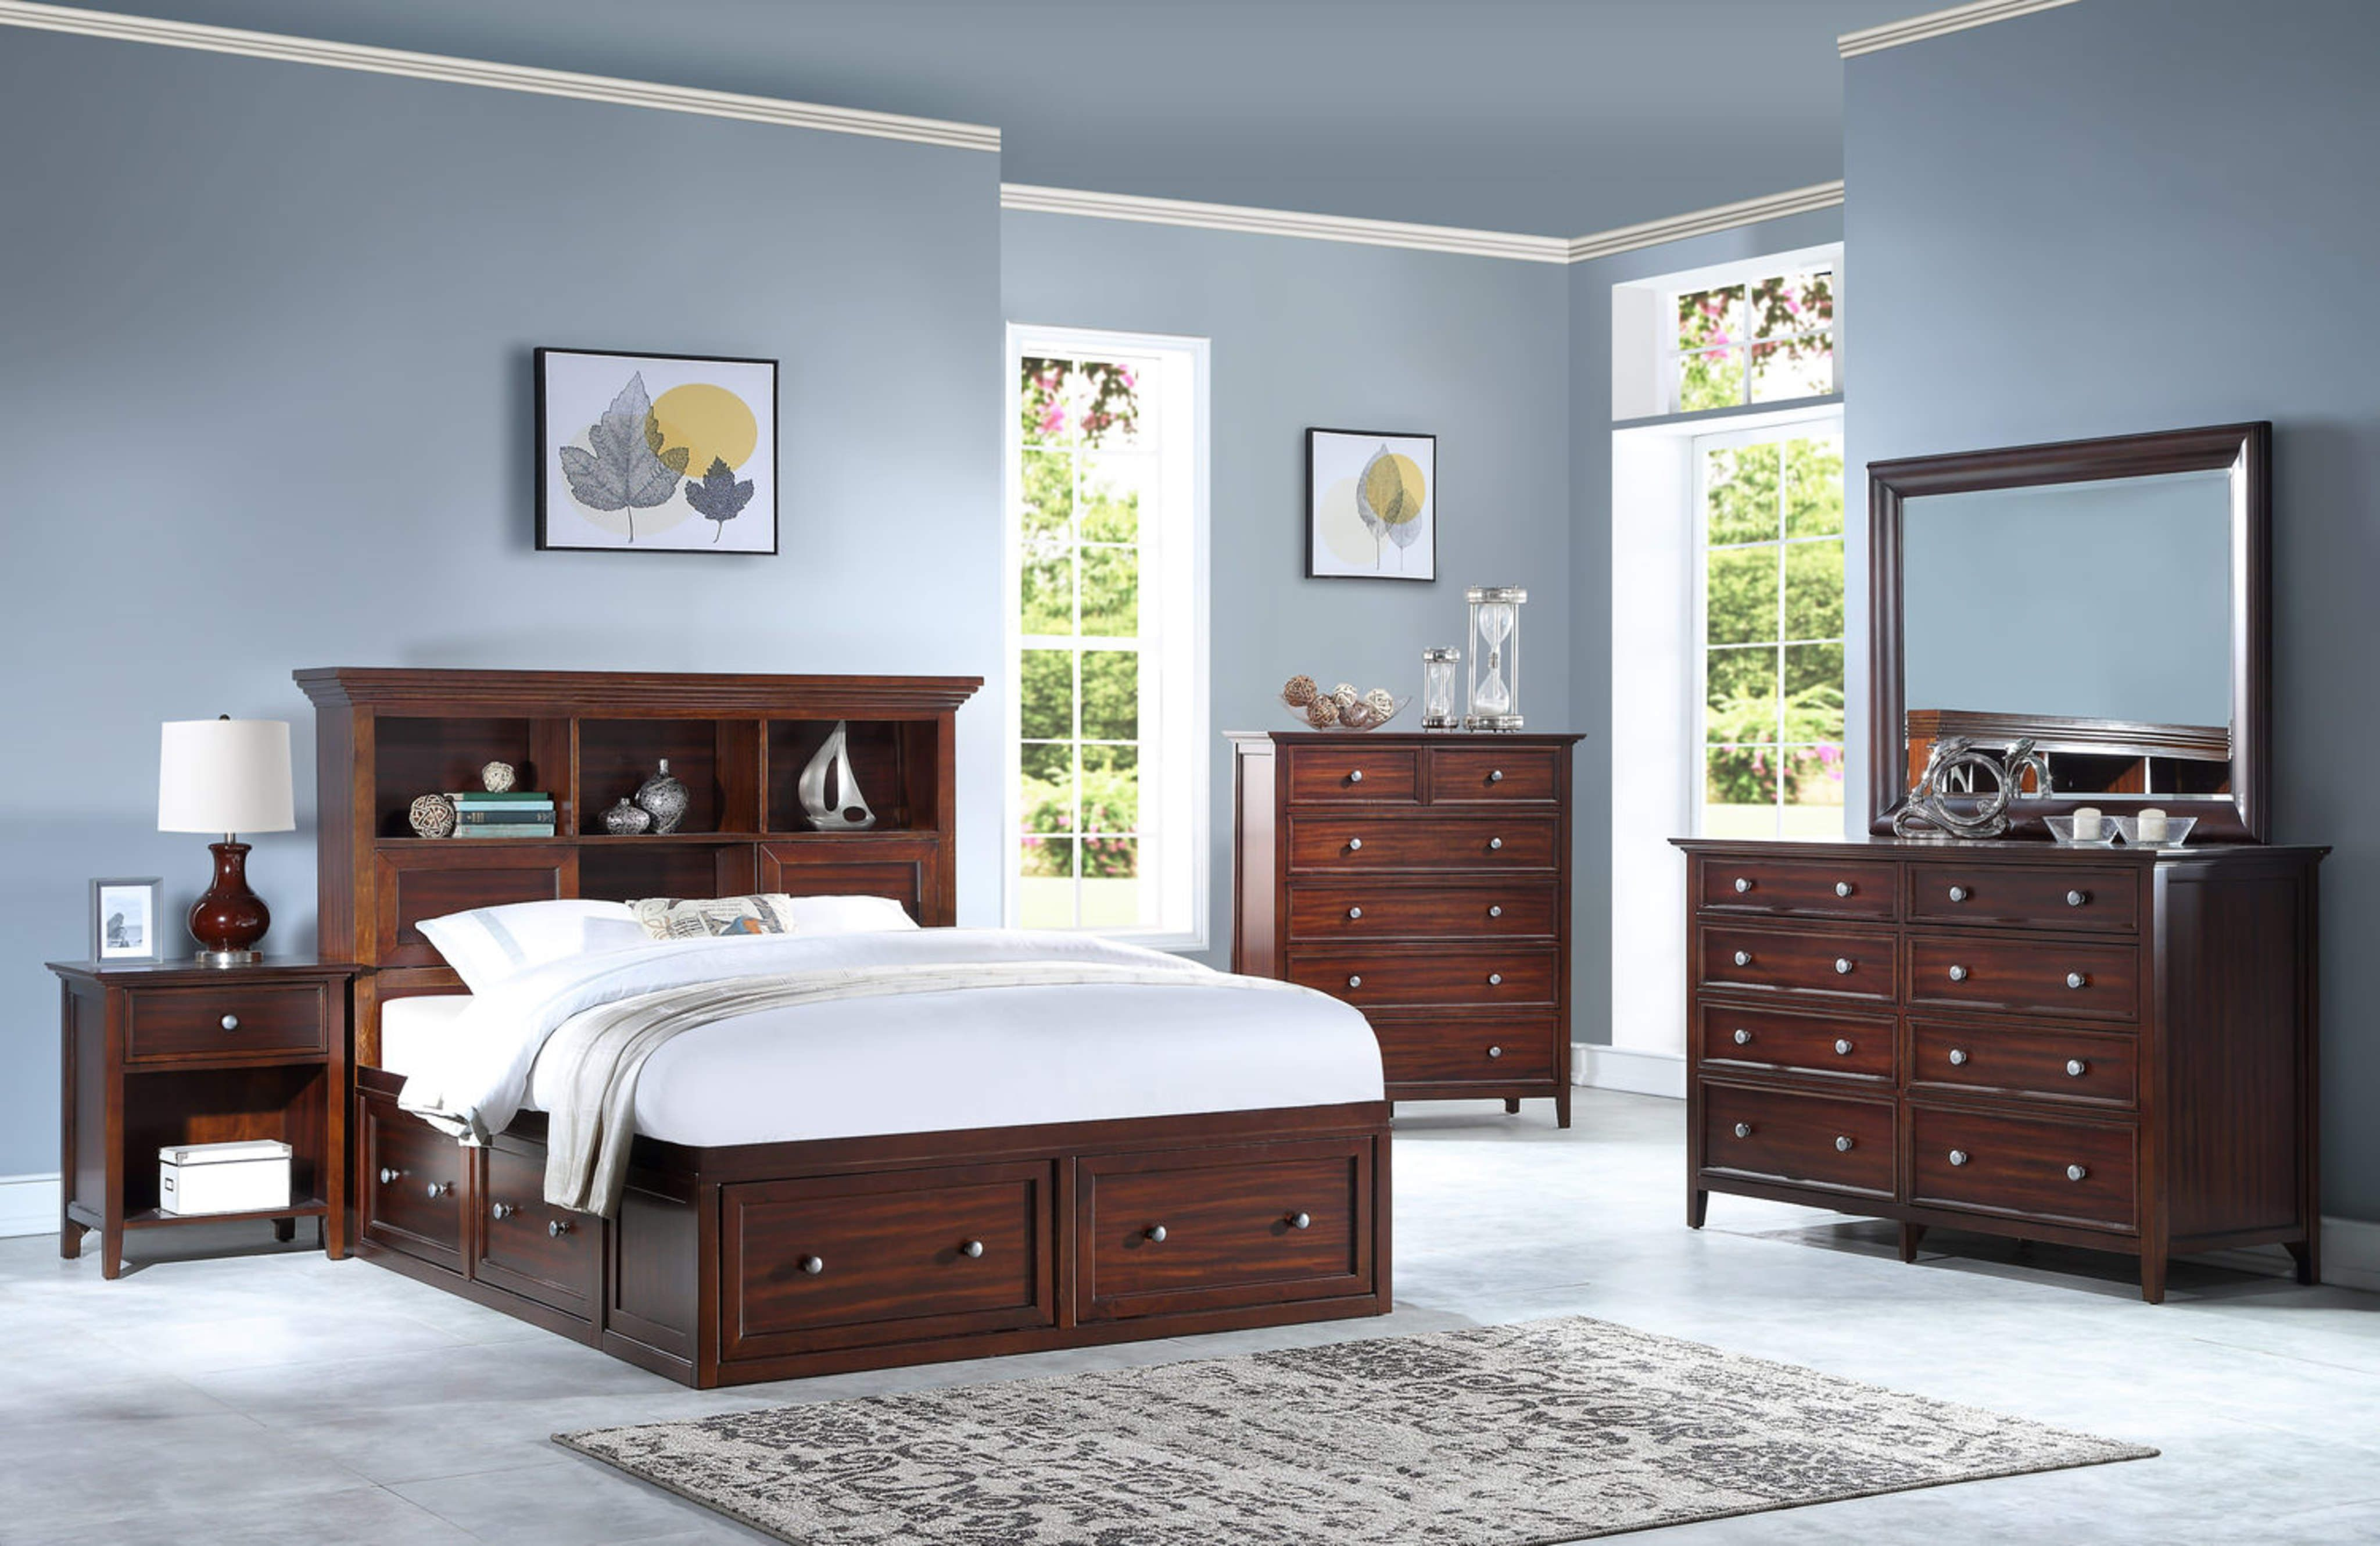 Small Bedroom Solutions design blog by HOM Furniture